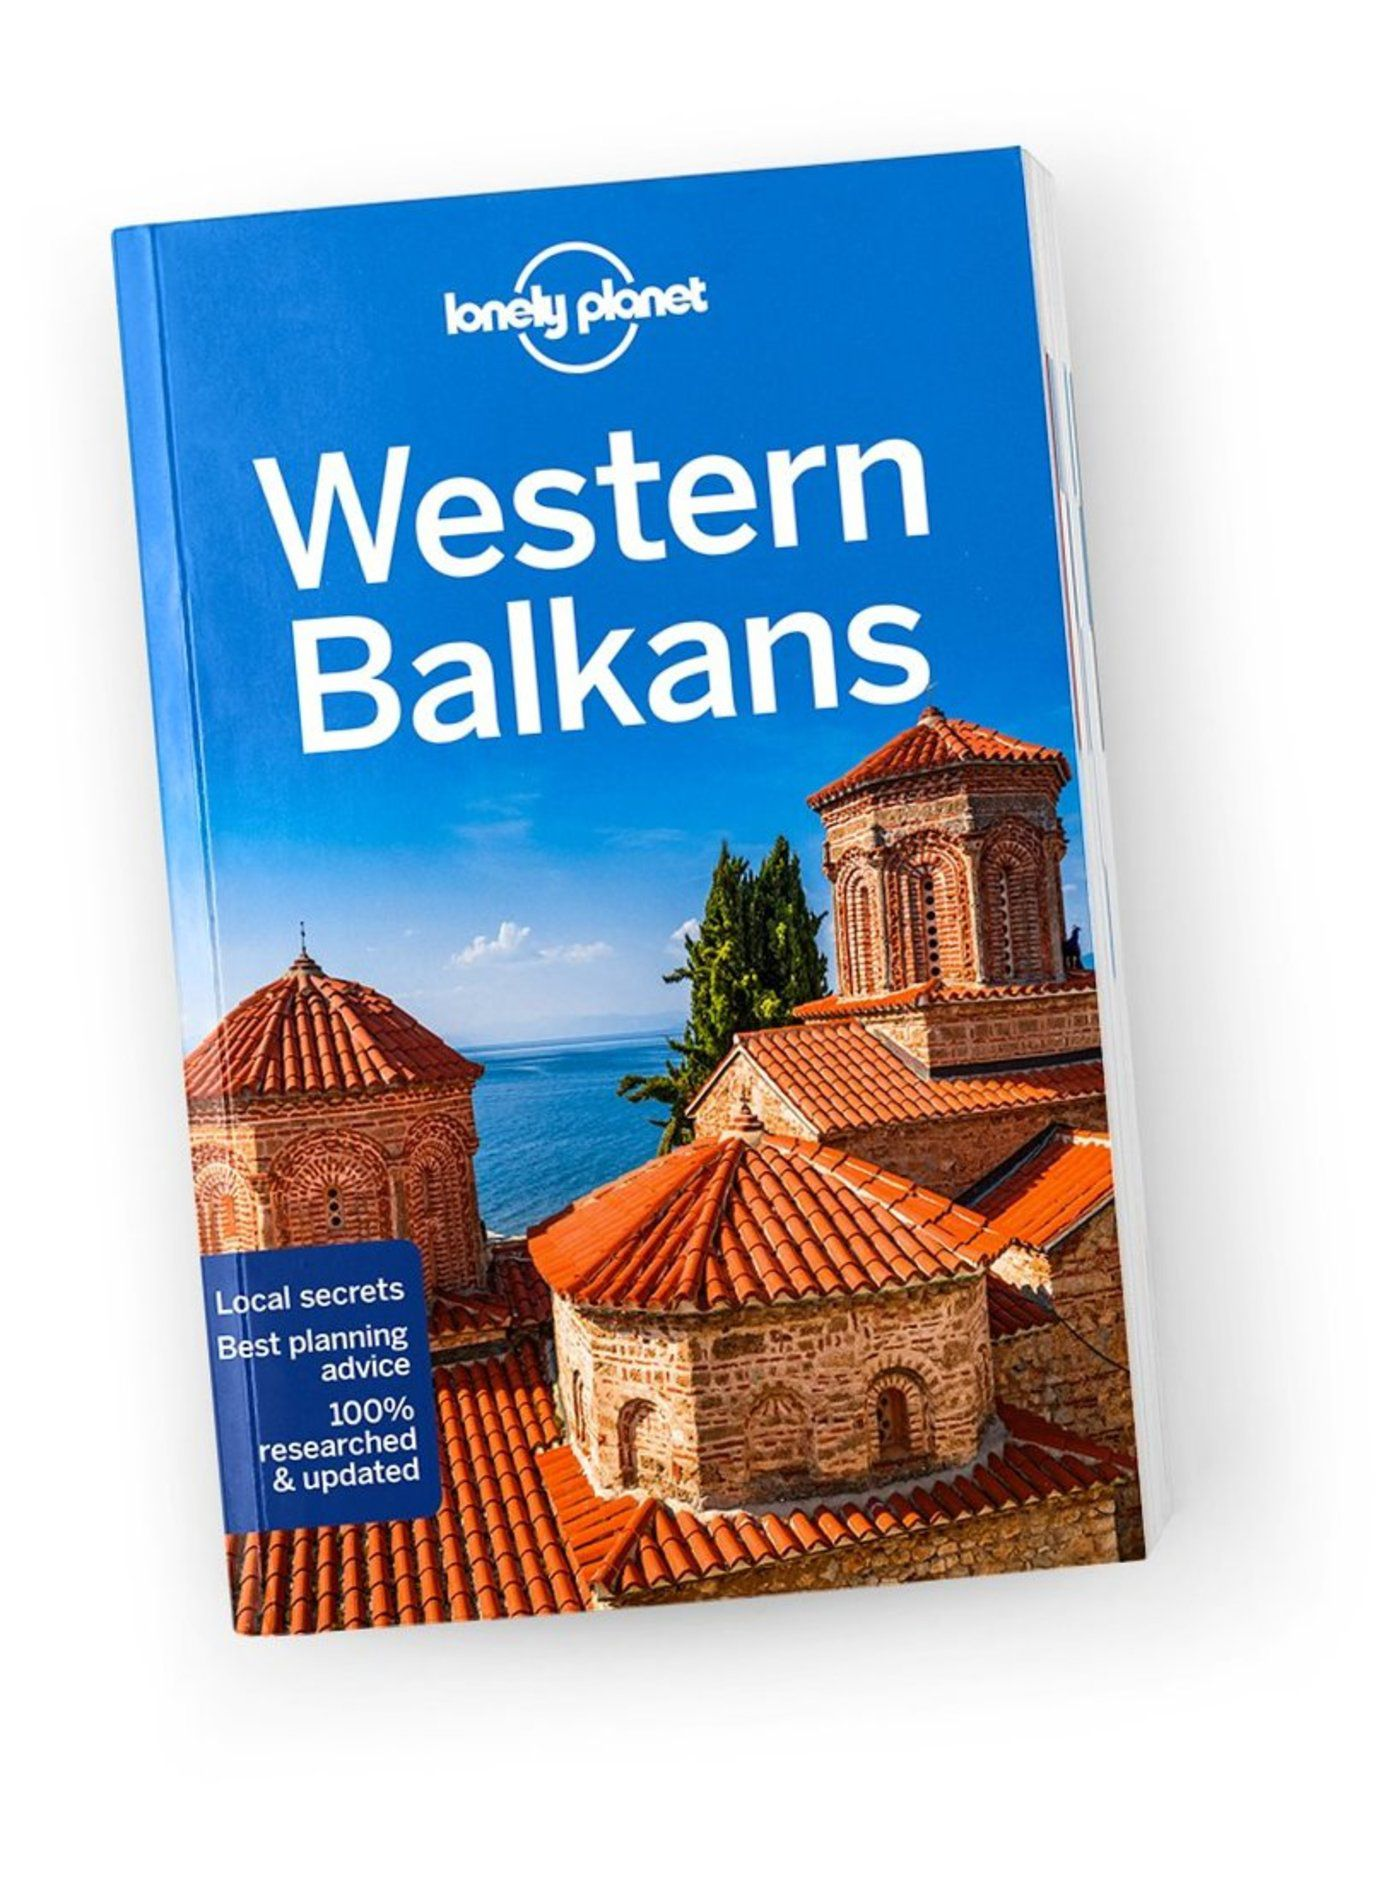 Western Balkans travel guide